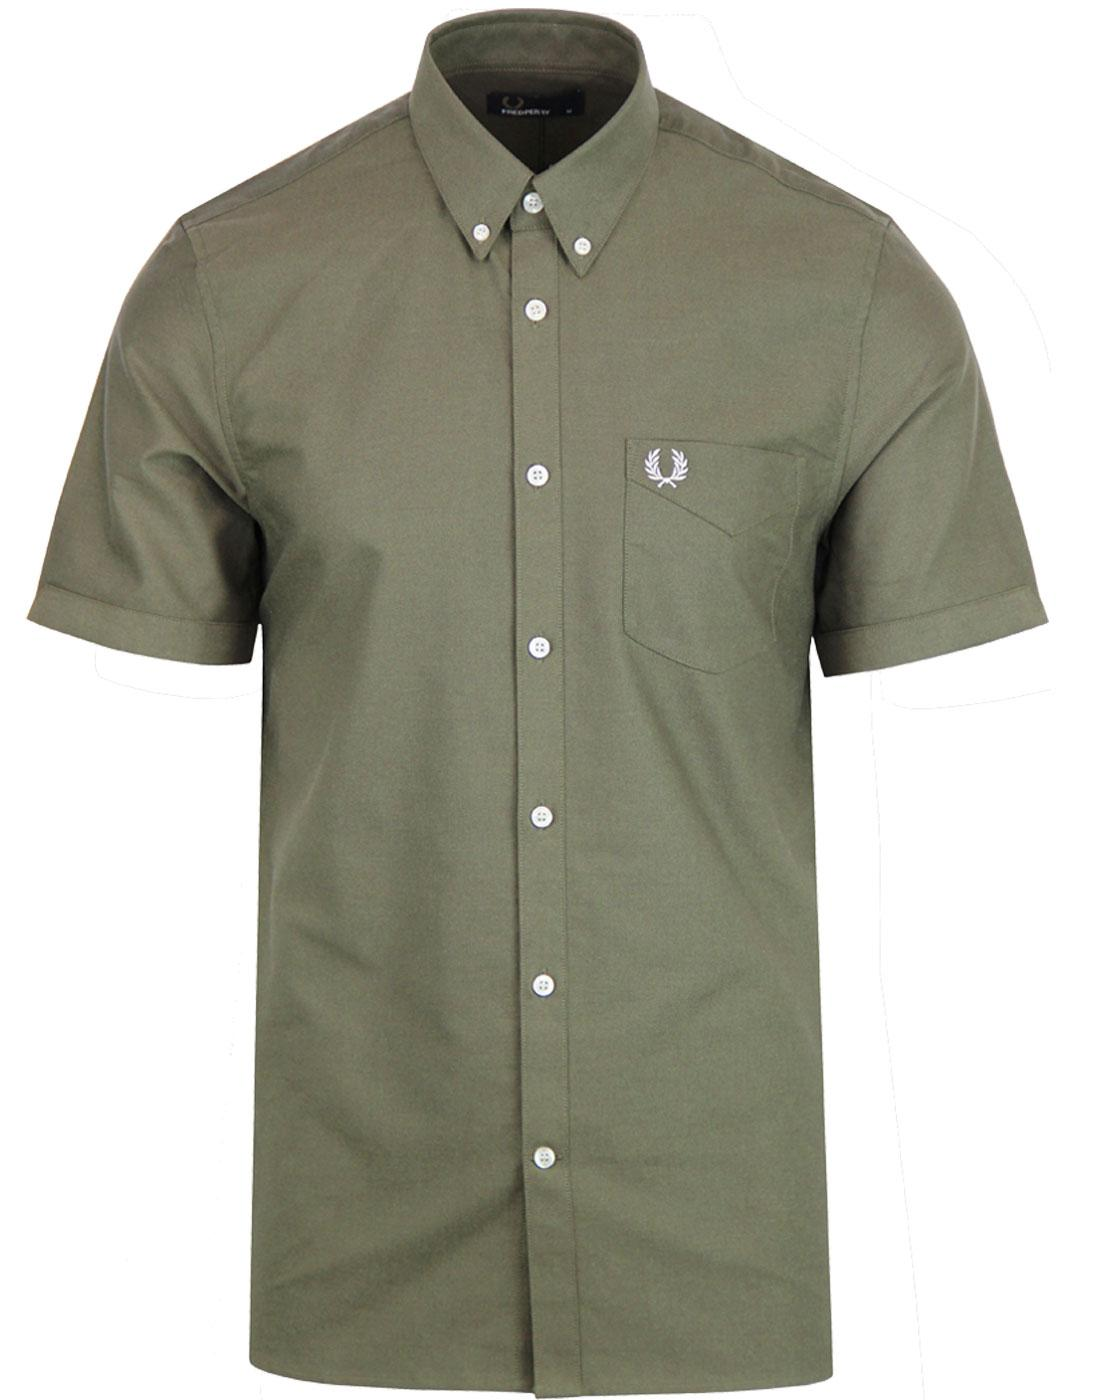 FRED PERRY Men's Classic S/S Oxford Shirt NETTLE